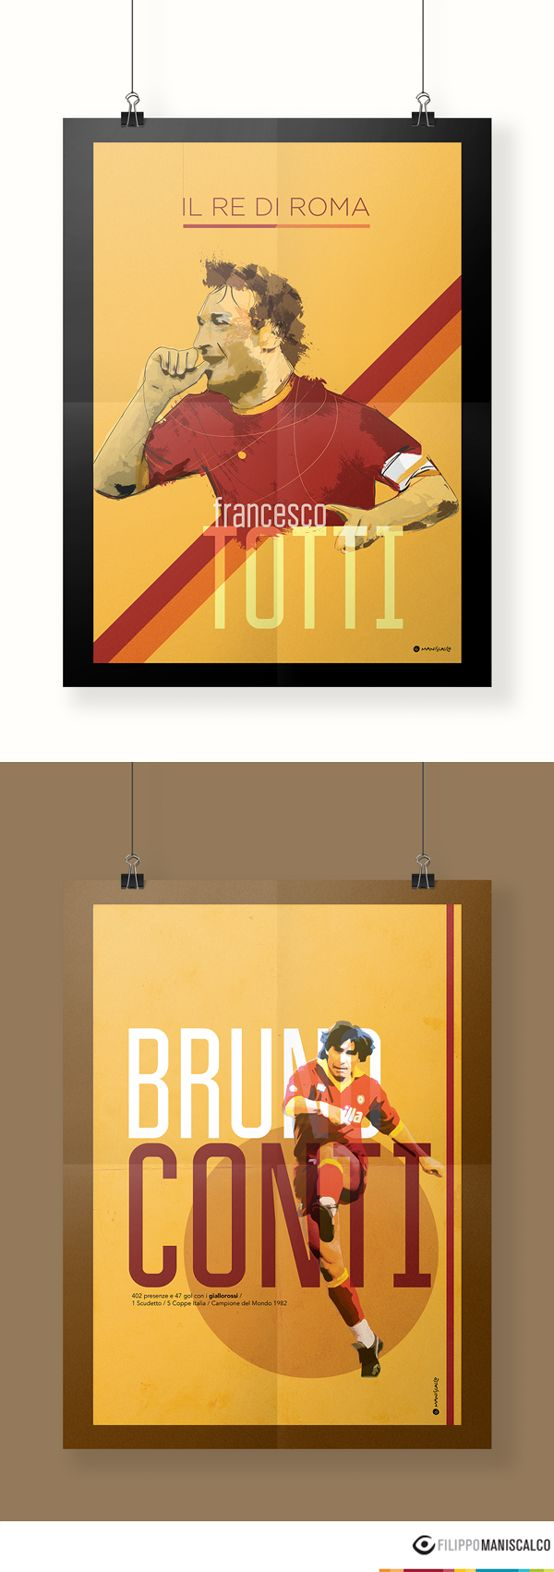 Collection of nine players on the illustrations of the 'Series A, the most beautiful championship in the world'. Graphic reproductions made through different styles. #SerieAPoster #Totti #BrunoConti #ASRoma    In Stock $33.28